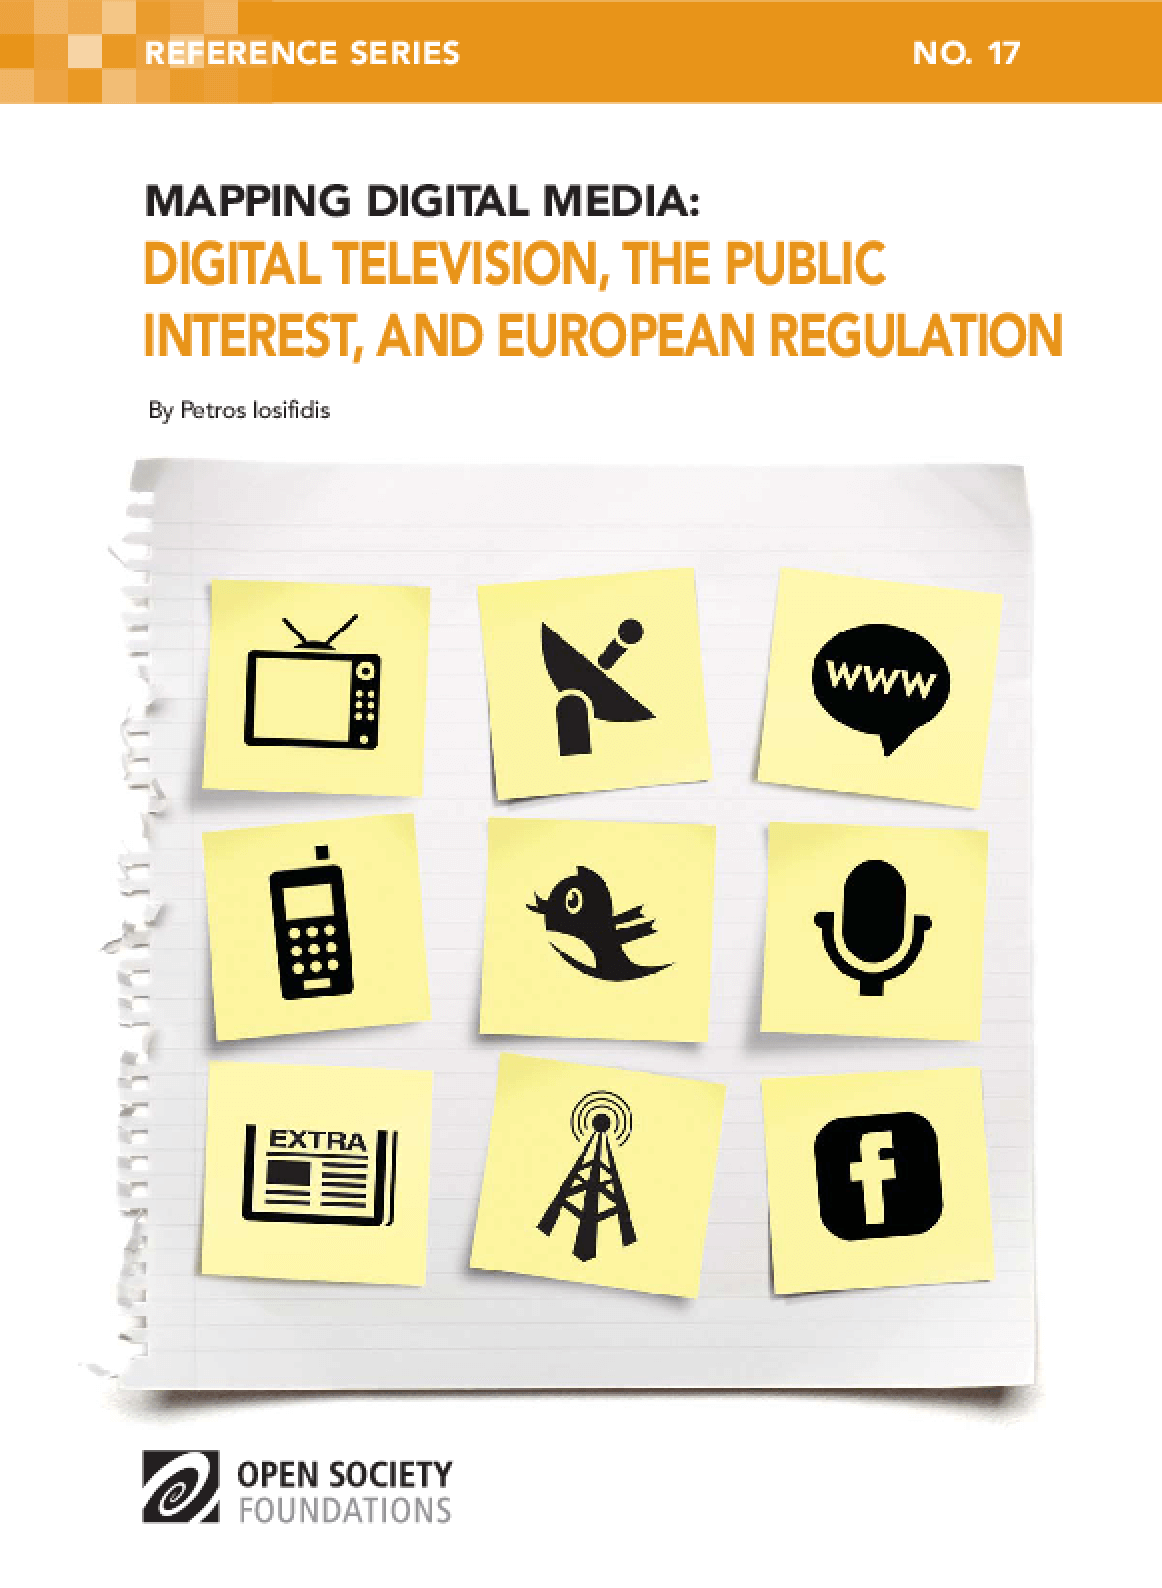 Mapping Digital Media: Digital Television, the Public Interest, and European Regulation